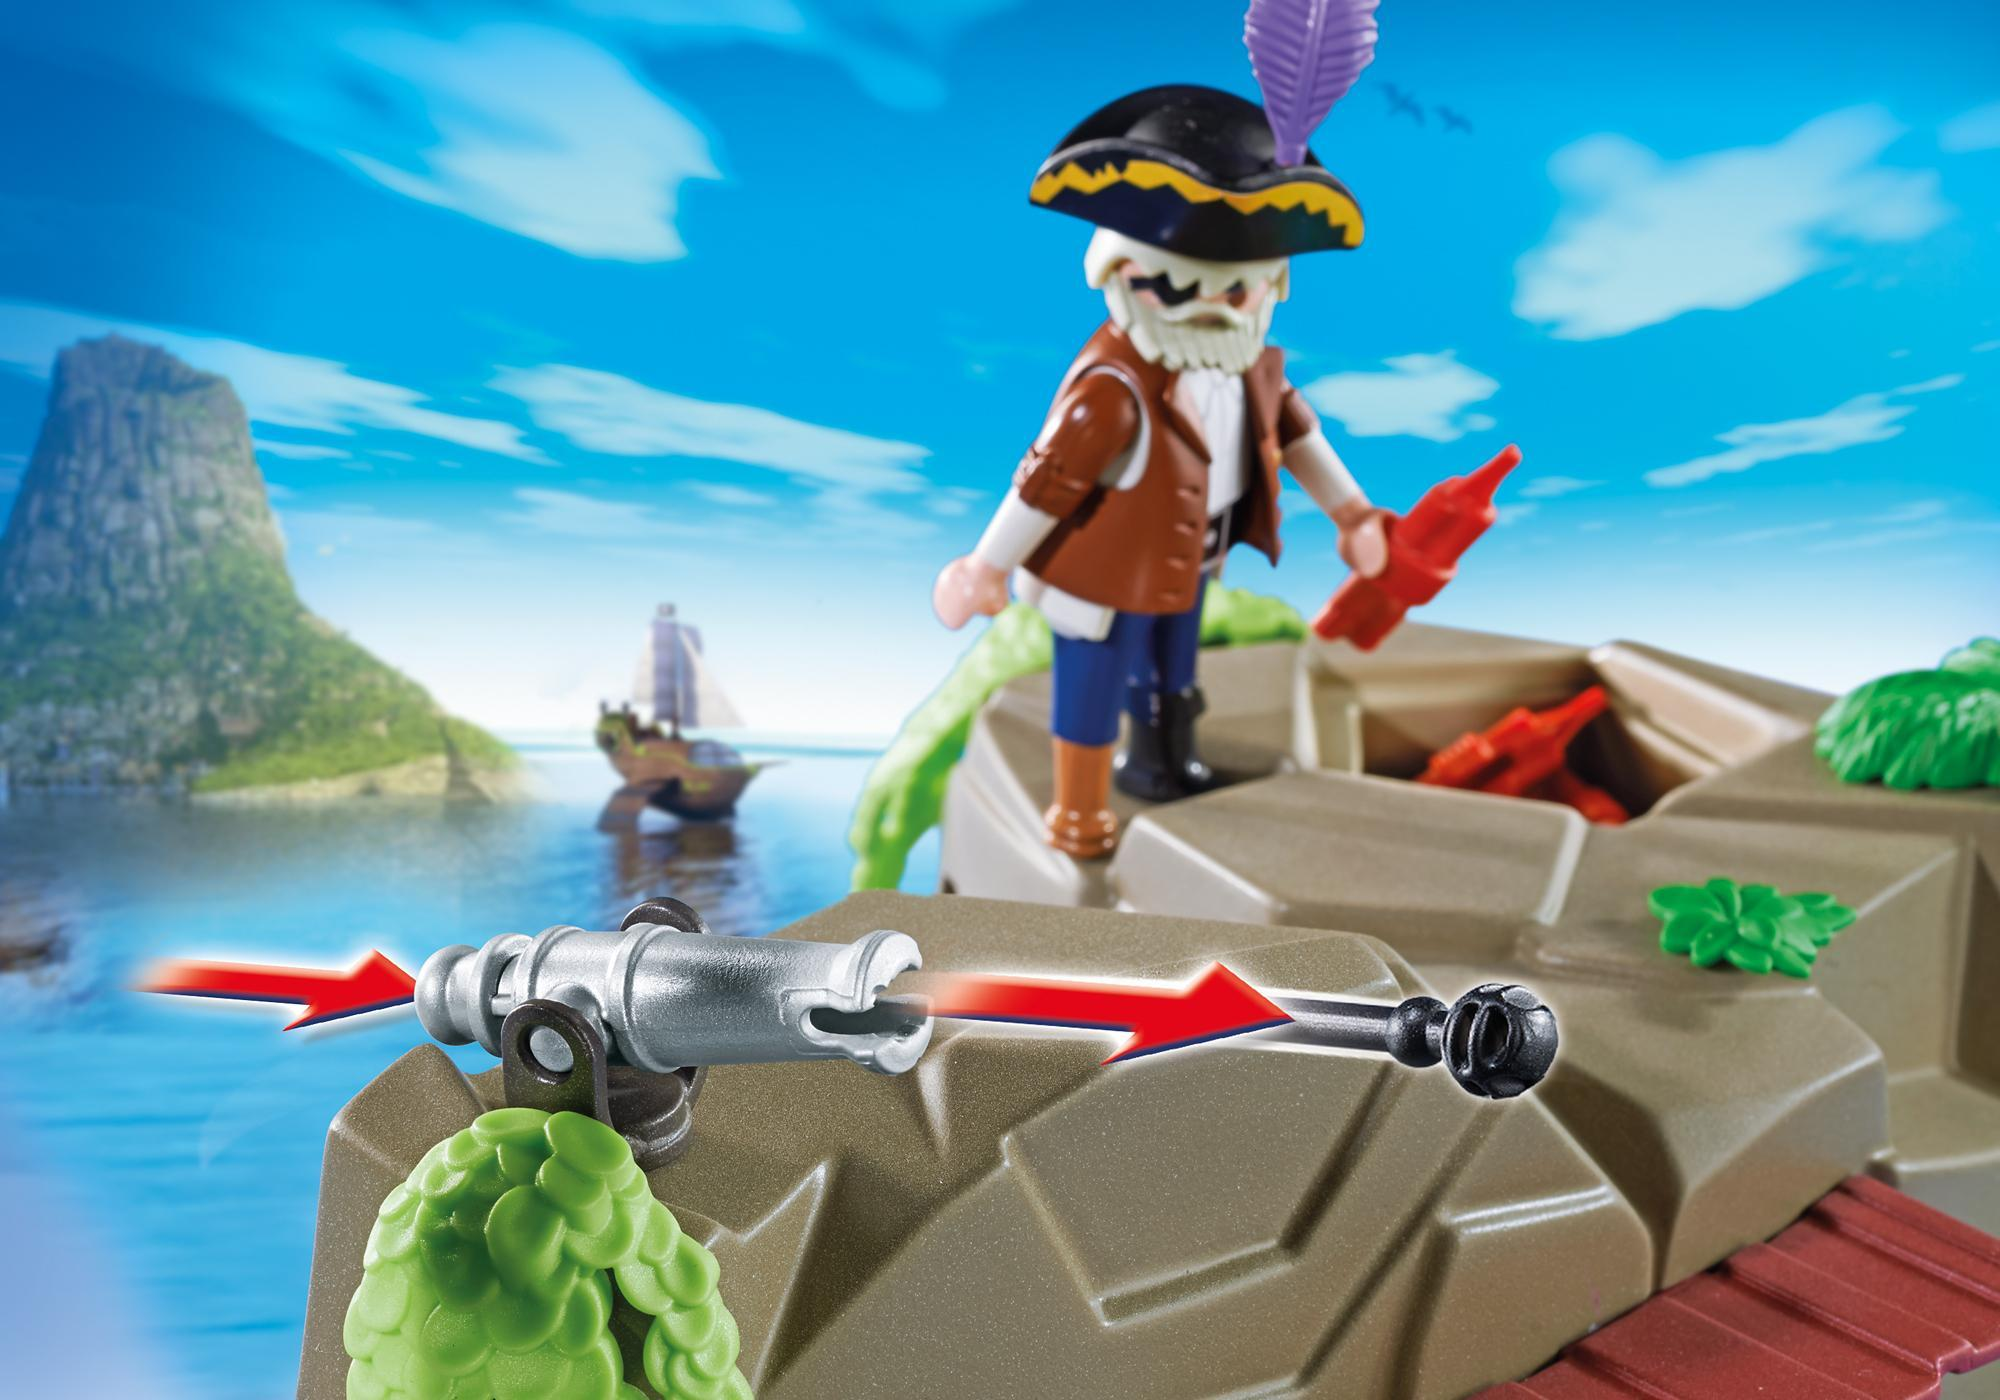 http://media.playmobil.com/i/playmobil/4797_product_extra2